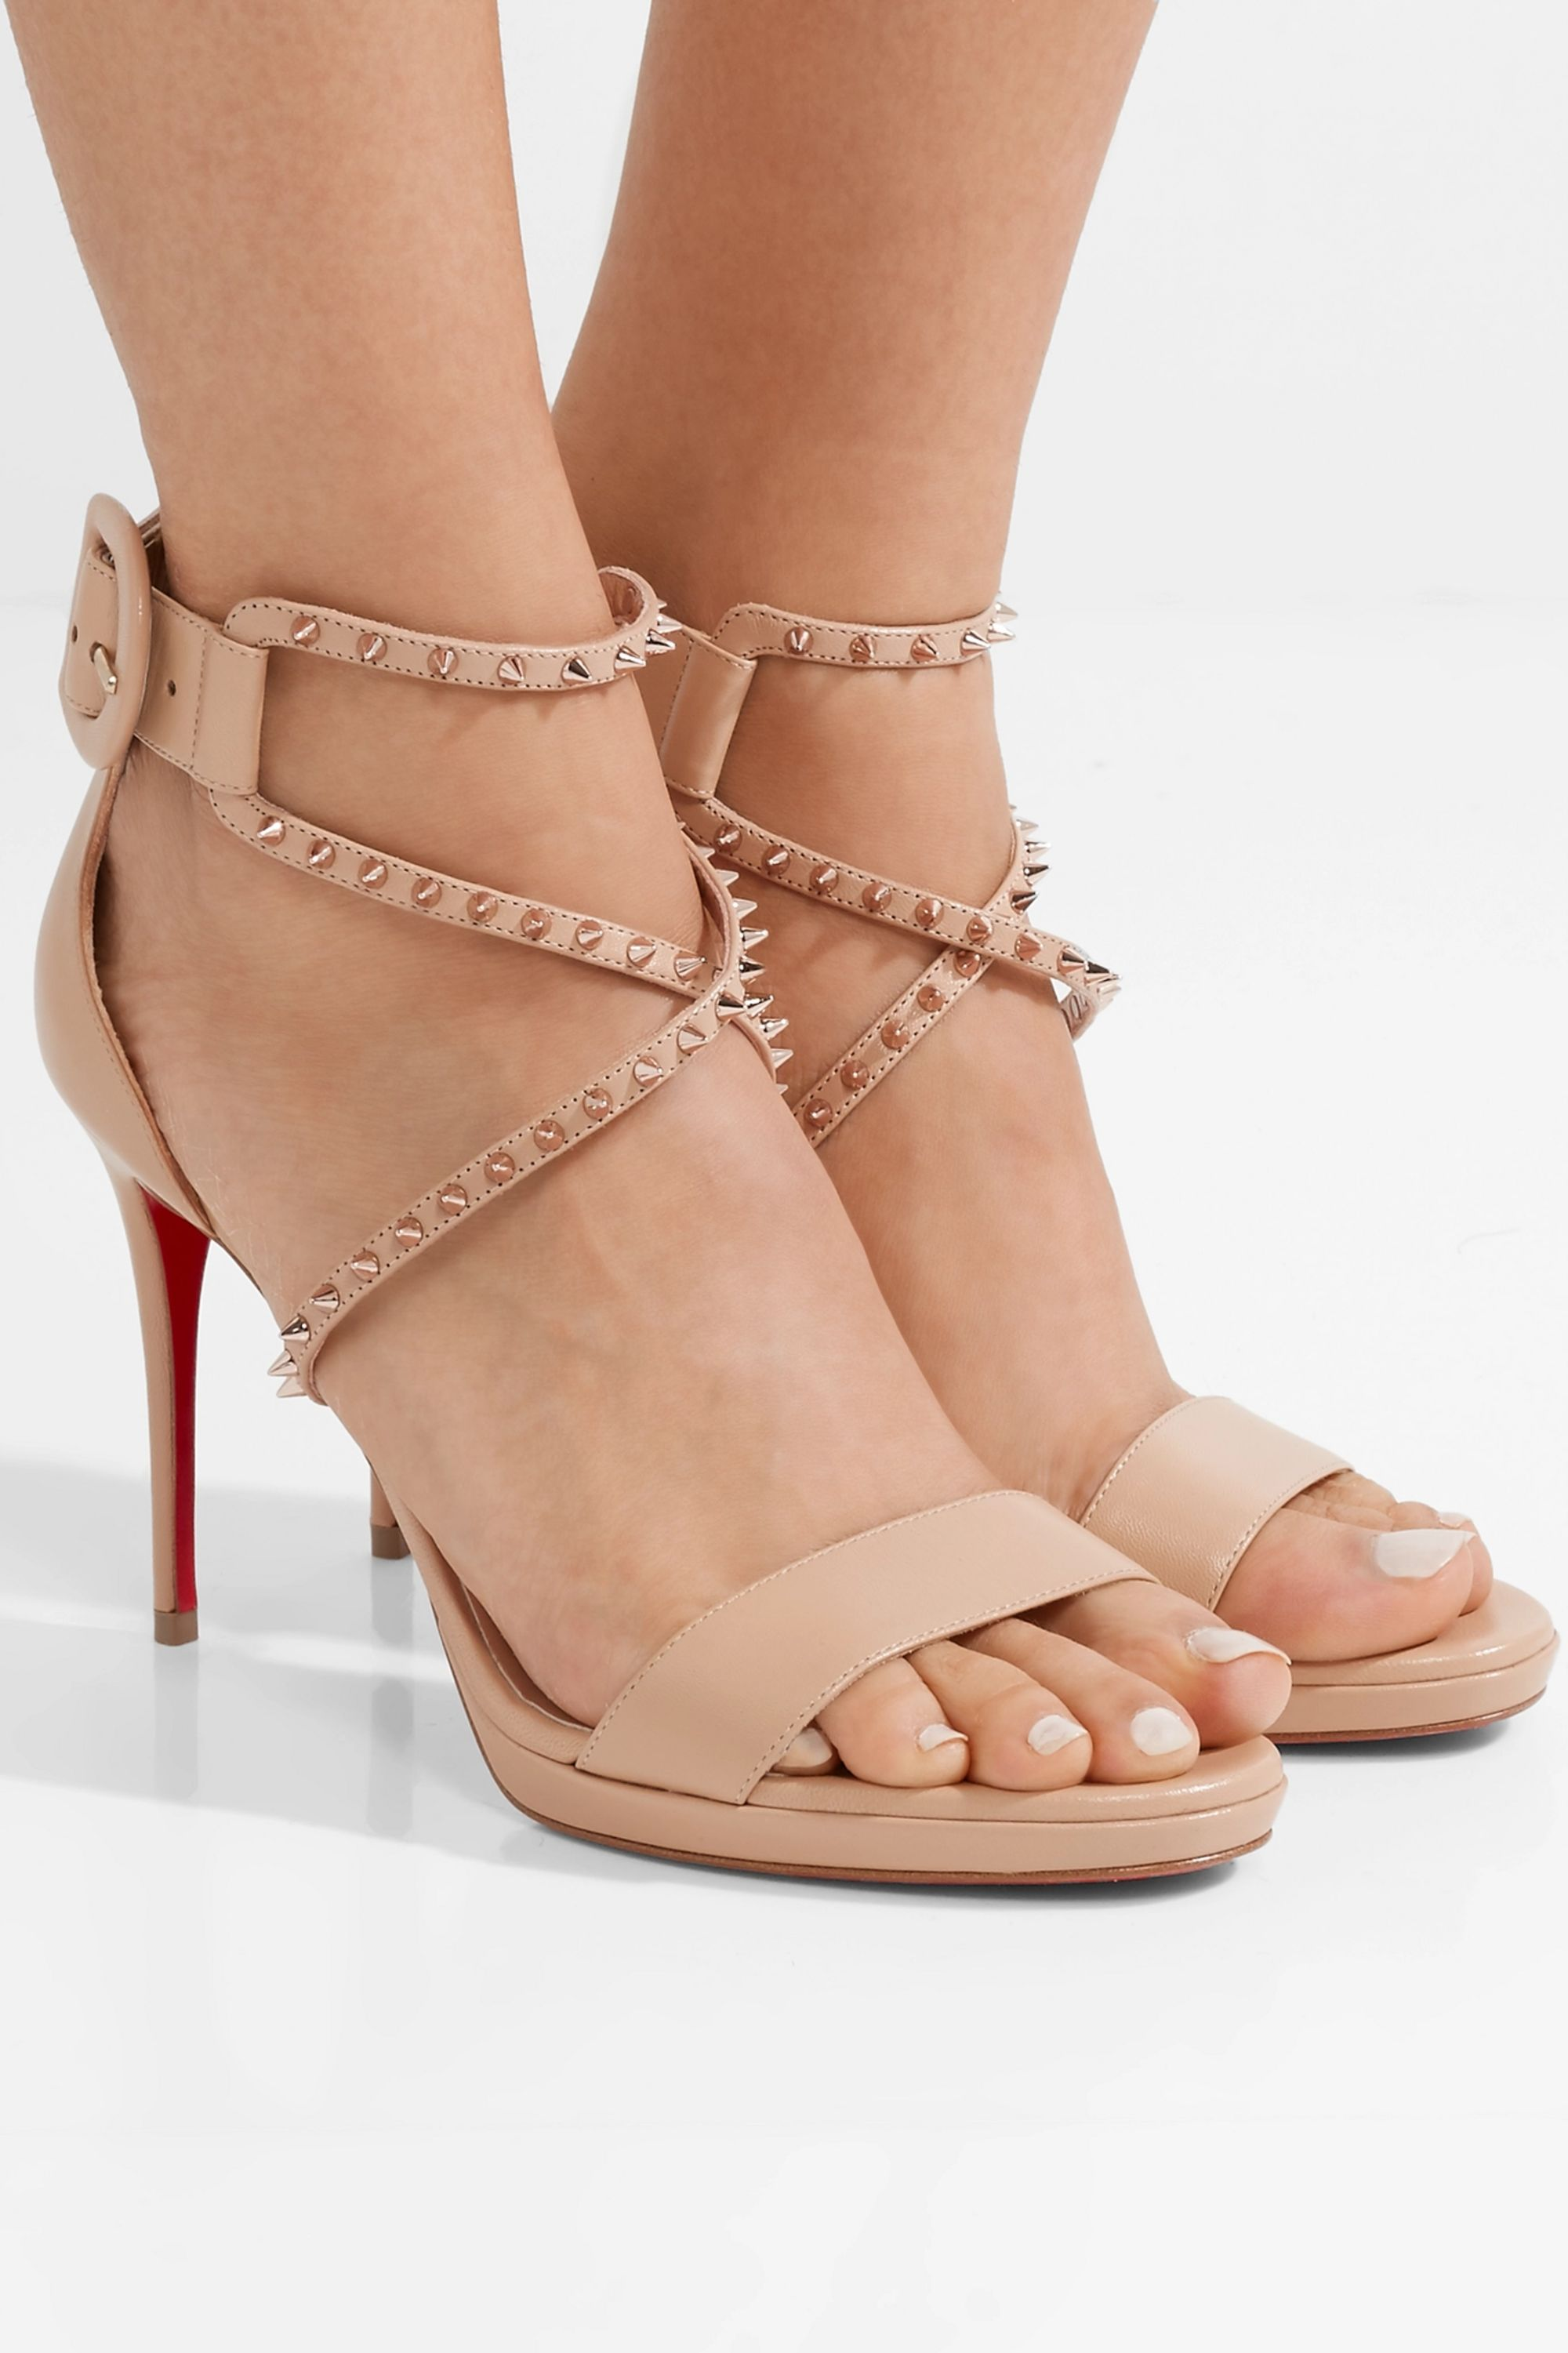 Choca Lux 100 studded leather sandals